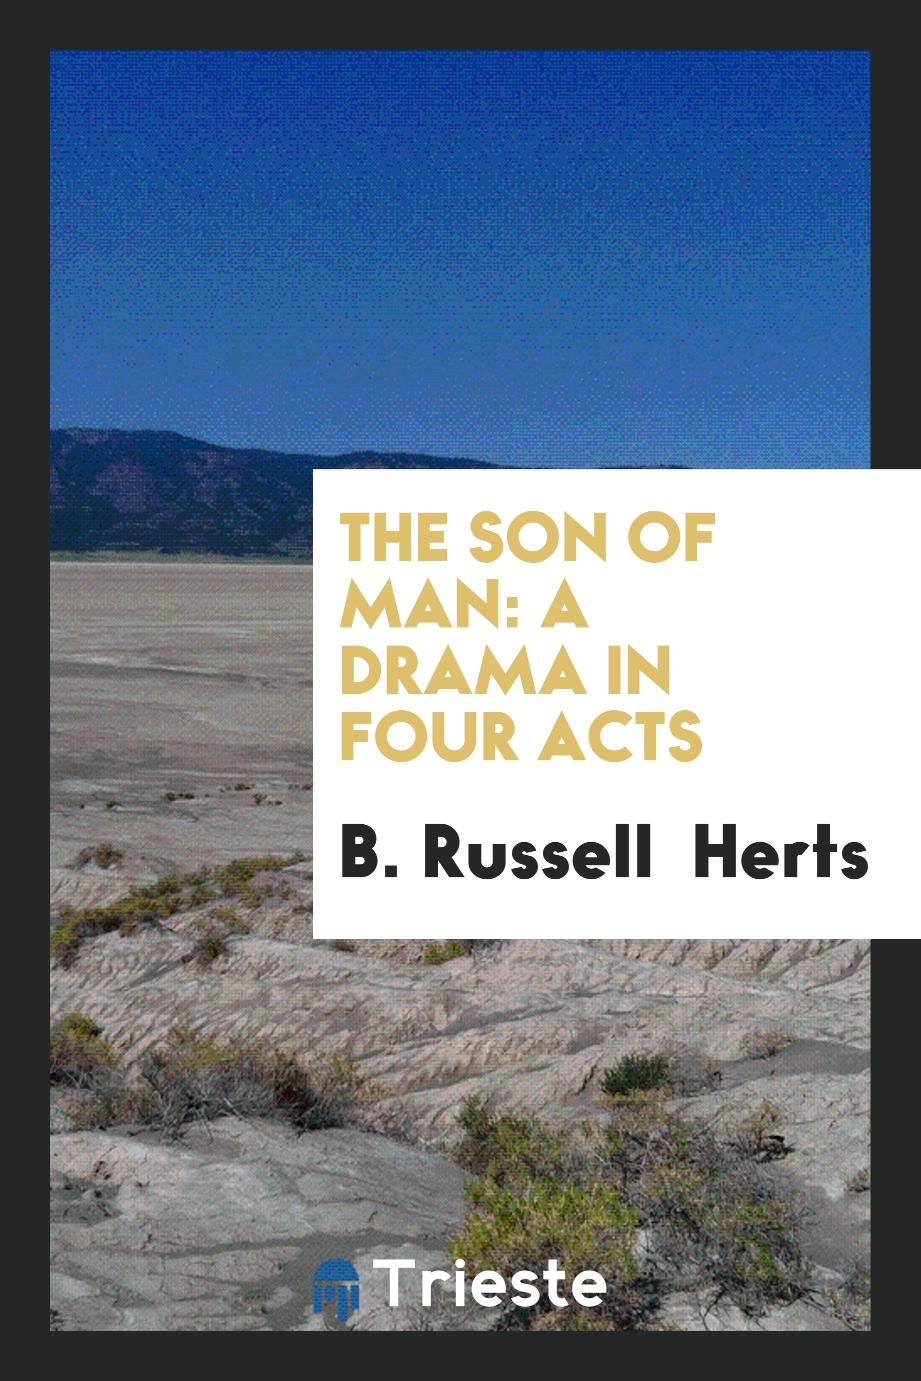 The Son of Man: A Drama in Four Acts